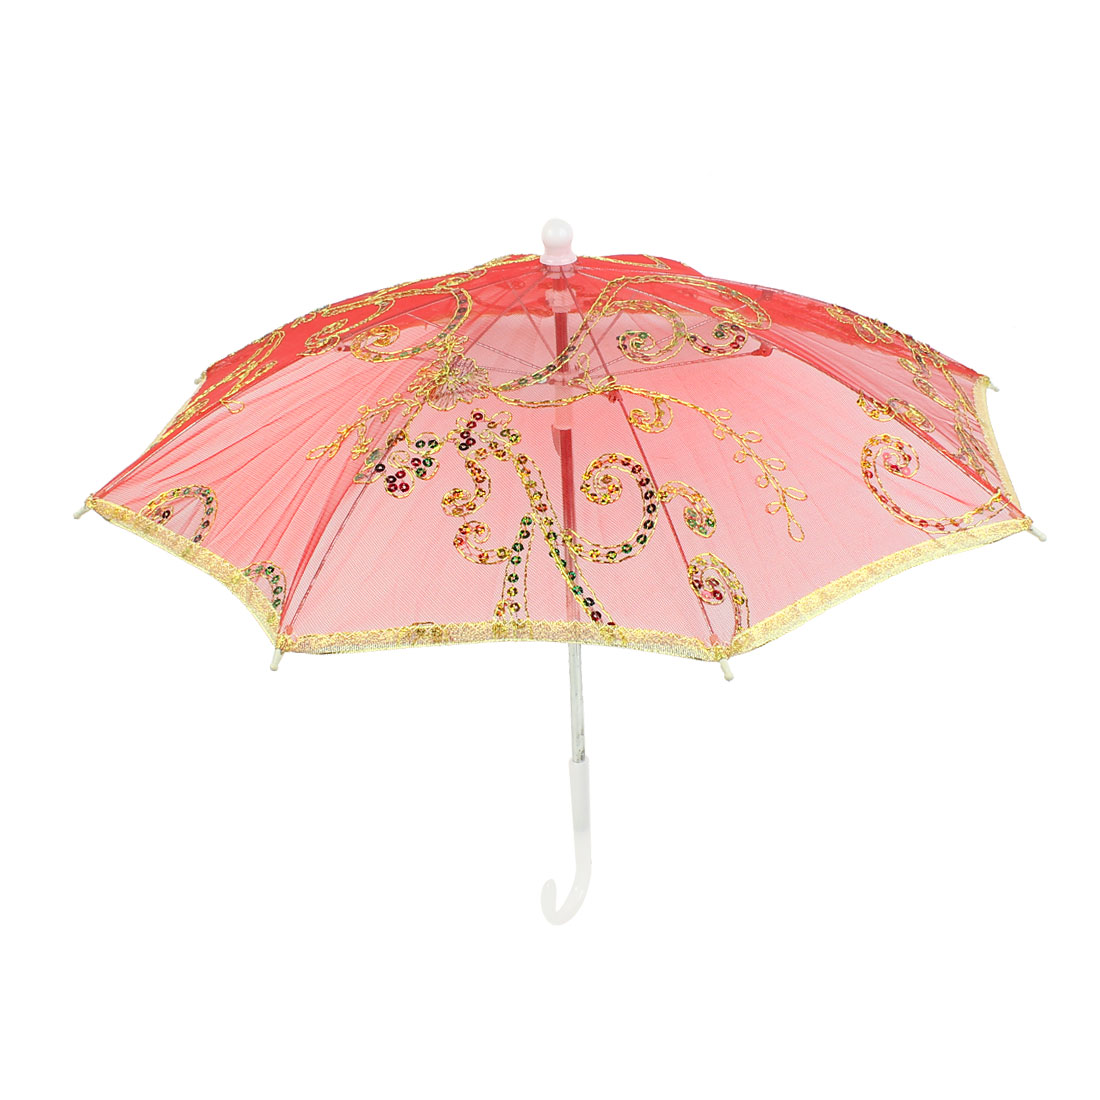 Gold Tone Embroidery Flower Folding Dancing Parasol Umbrella Red